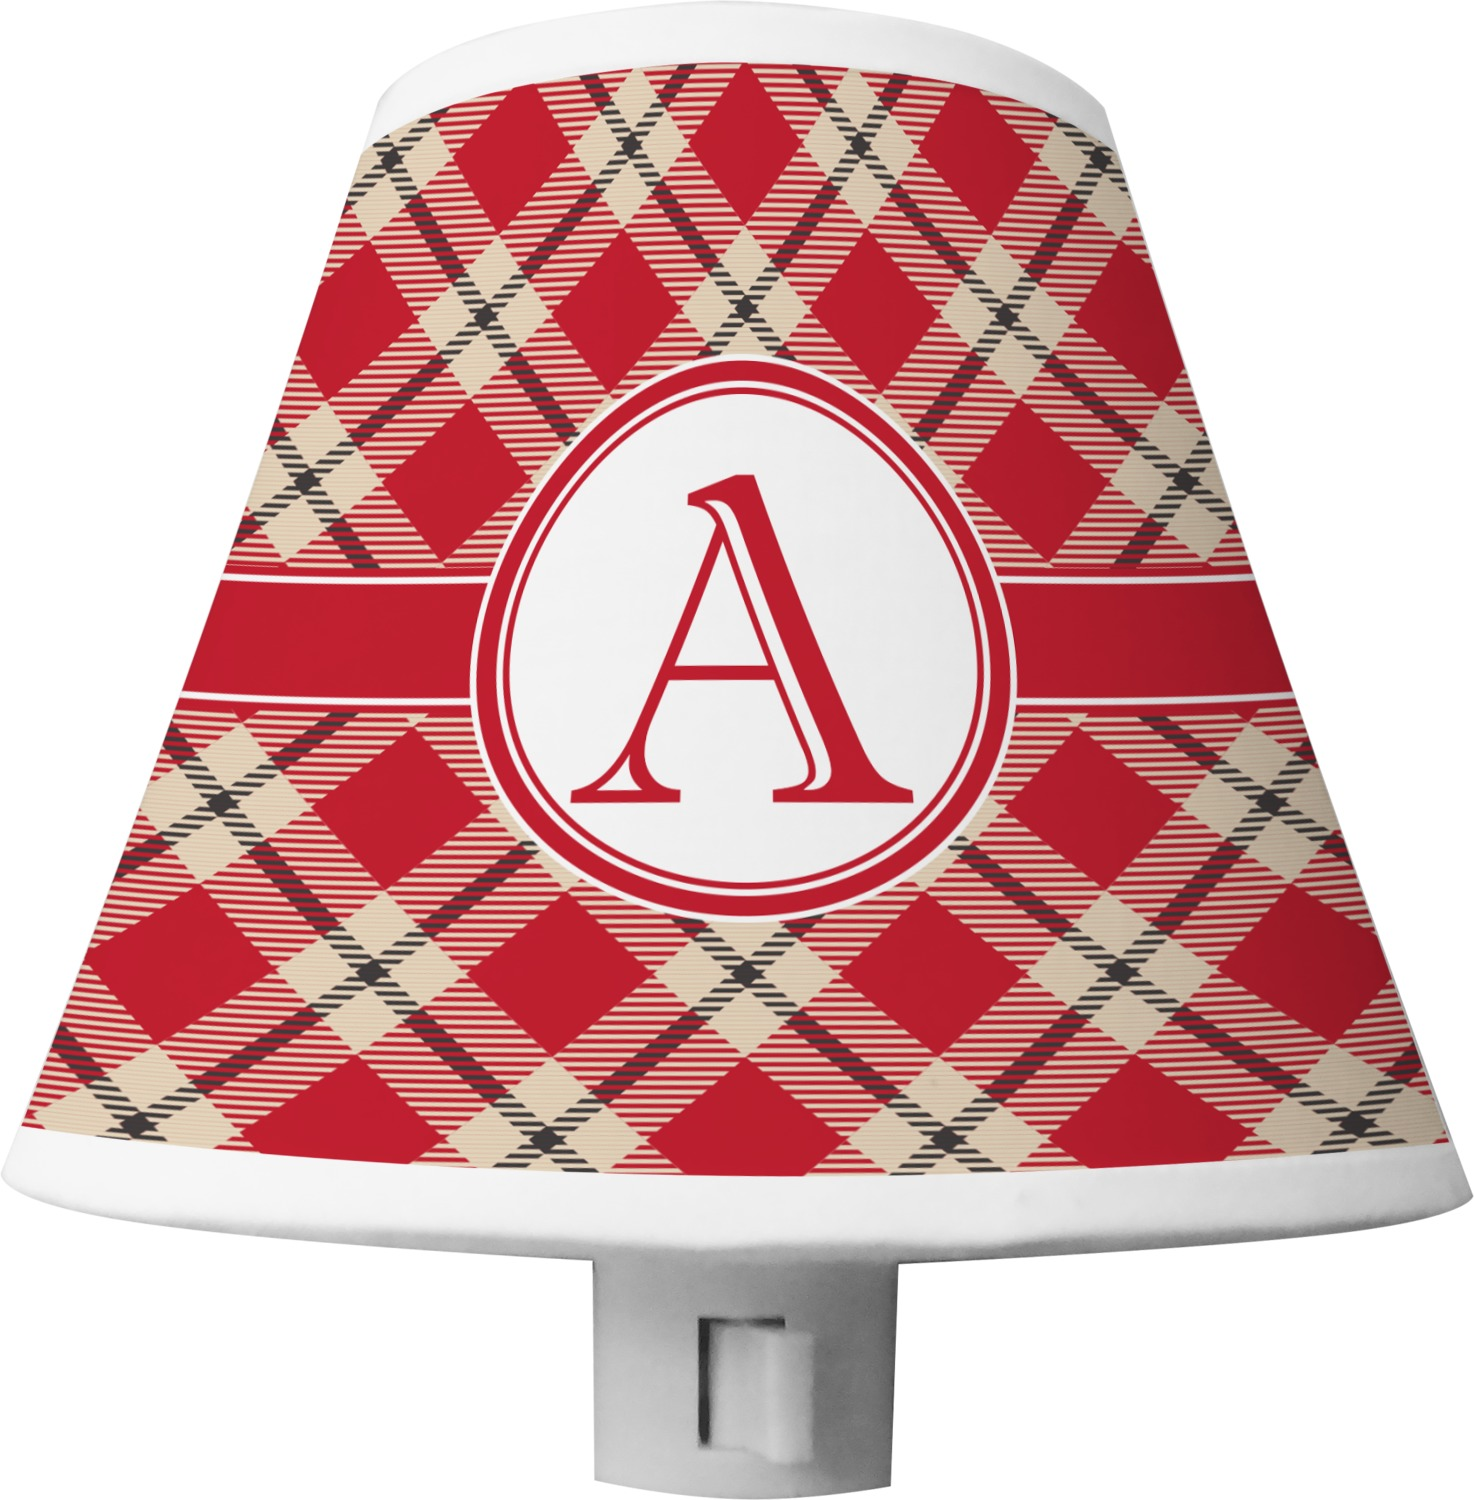 Red Amp Tan Plaid Shade Night Light Personalized